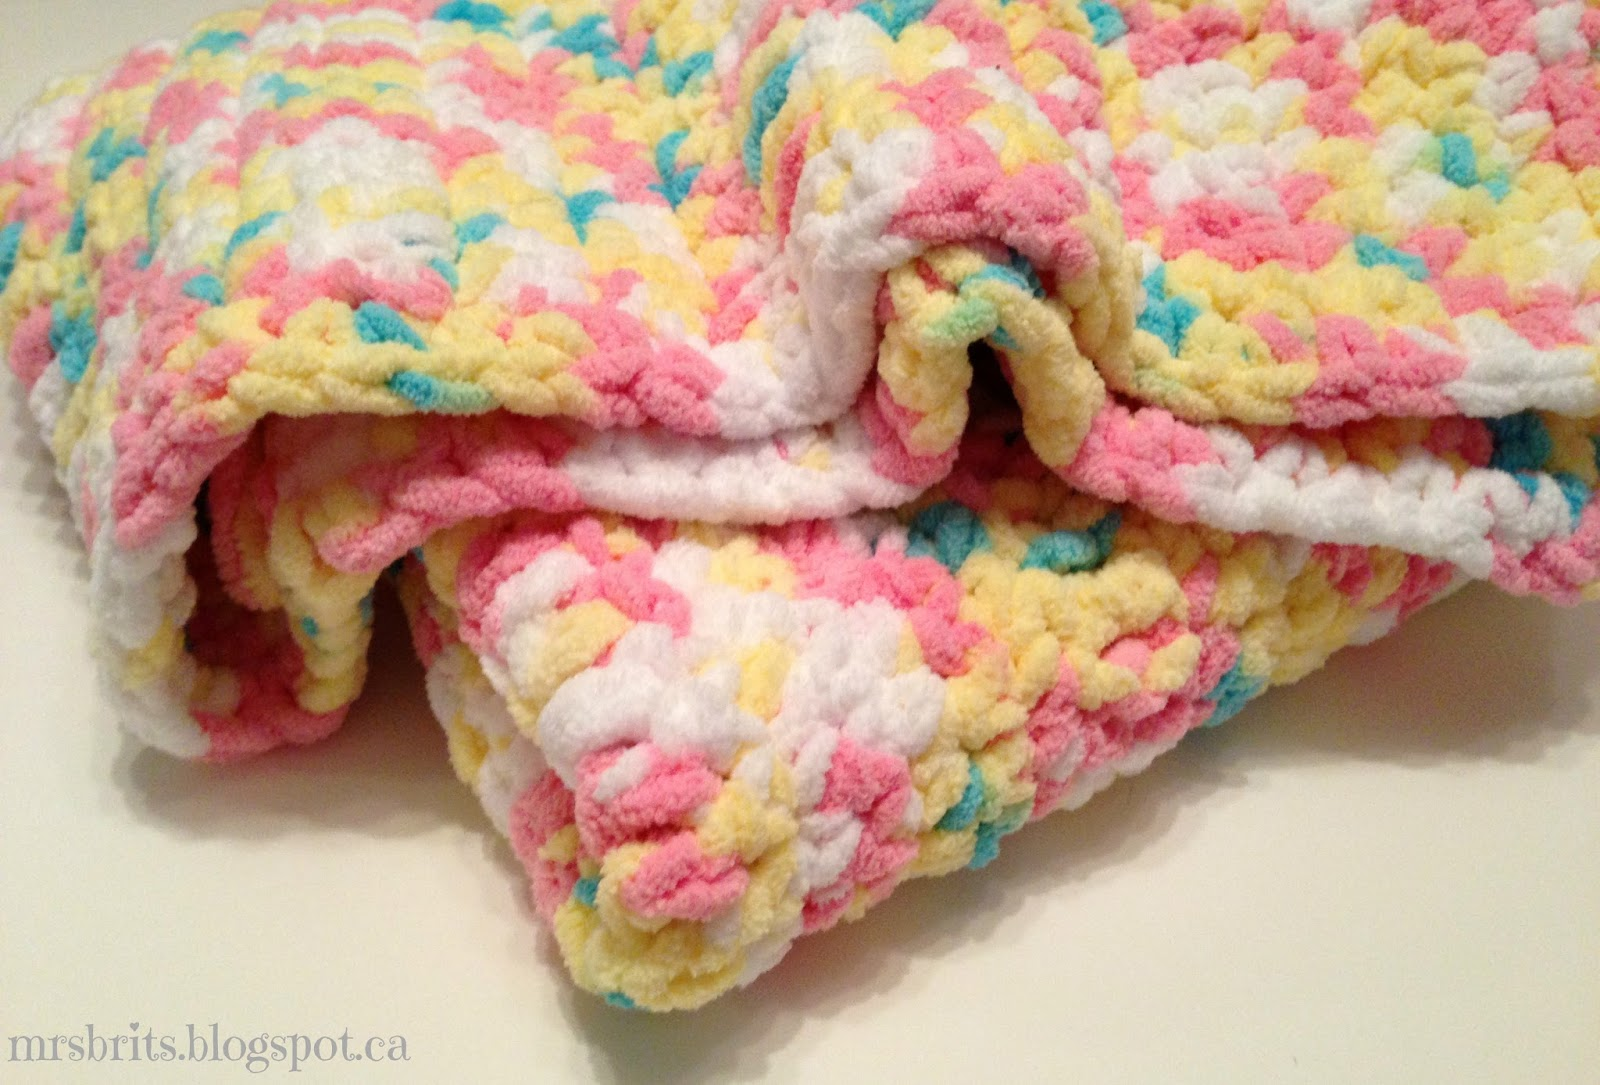 Free Crochet Patterns For Baby Sport Yarn : MrsBrits: August 2013